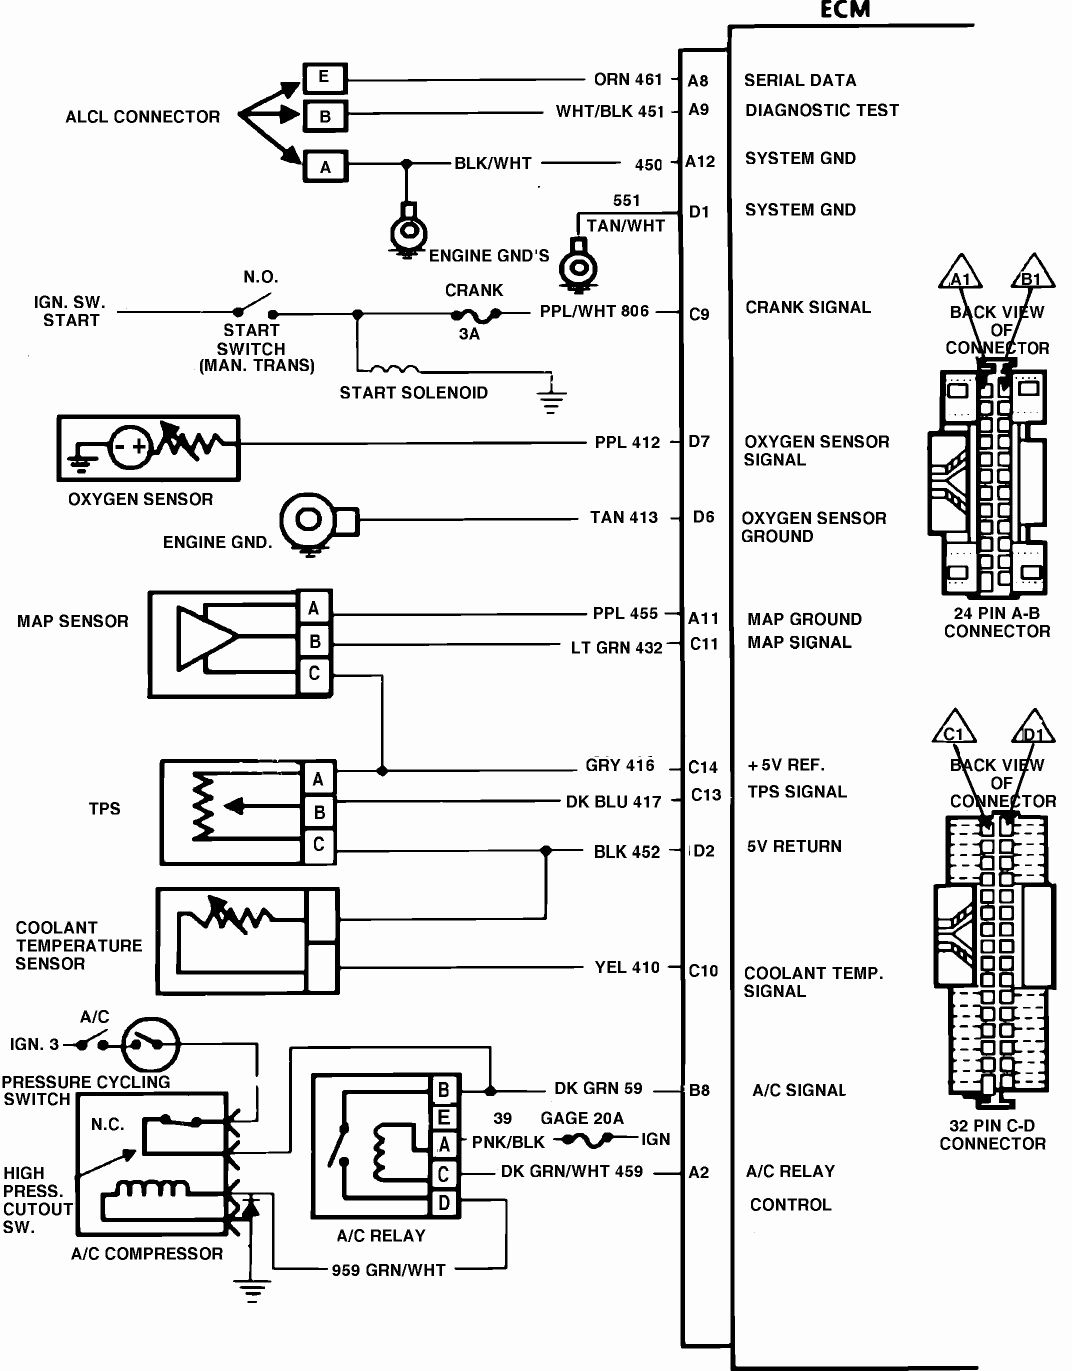 60 Lovely 2004 Chevy Silverado Radio Wiring Diagram Graphics | Wsmce - 2004 Chevy Cavalier Stereo Wiring Diagram